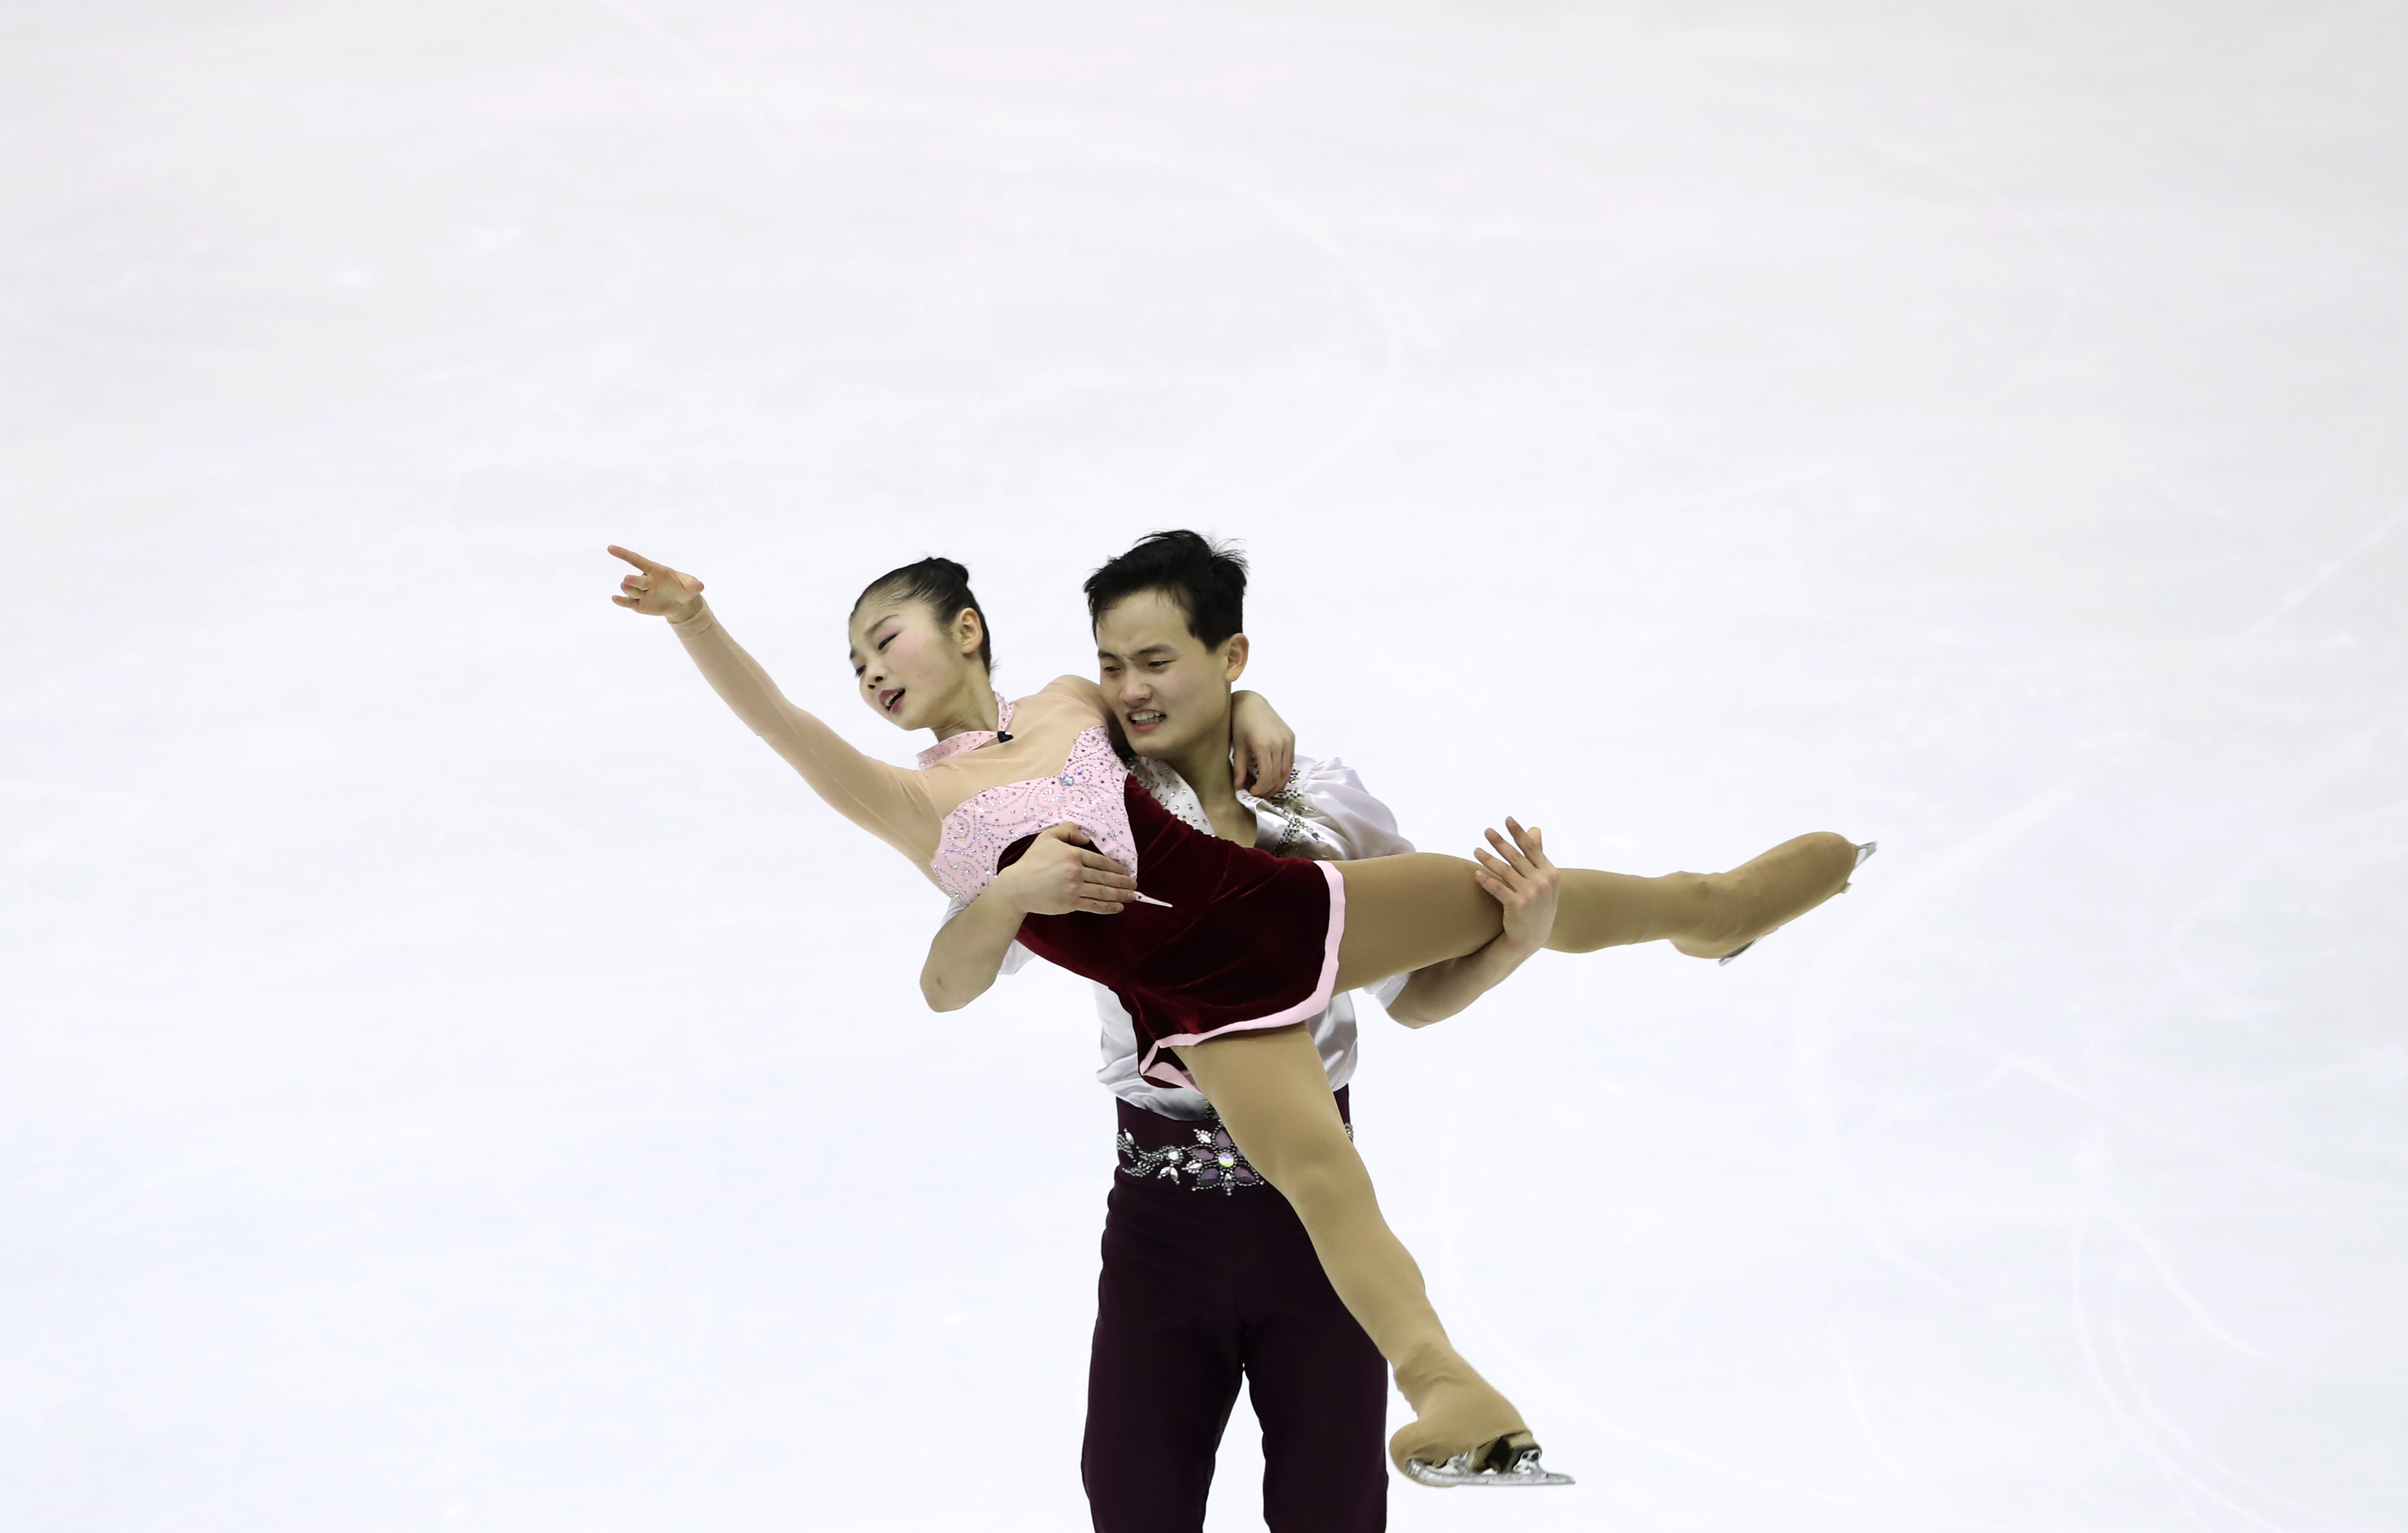 Ryom Tae Ok and Kim Ju Sik of North Korea perform in the Pairs Free Skating program of Figure Skating competition at Makomanai Indoor Skating Rink at the Asian Winter Games in Sapporo, northern Japan, Saturday, Feb. 25, 2017.